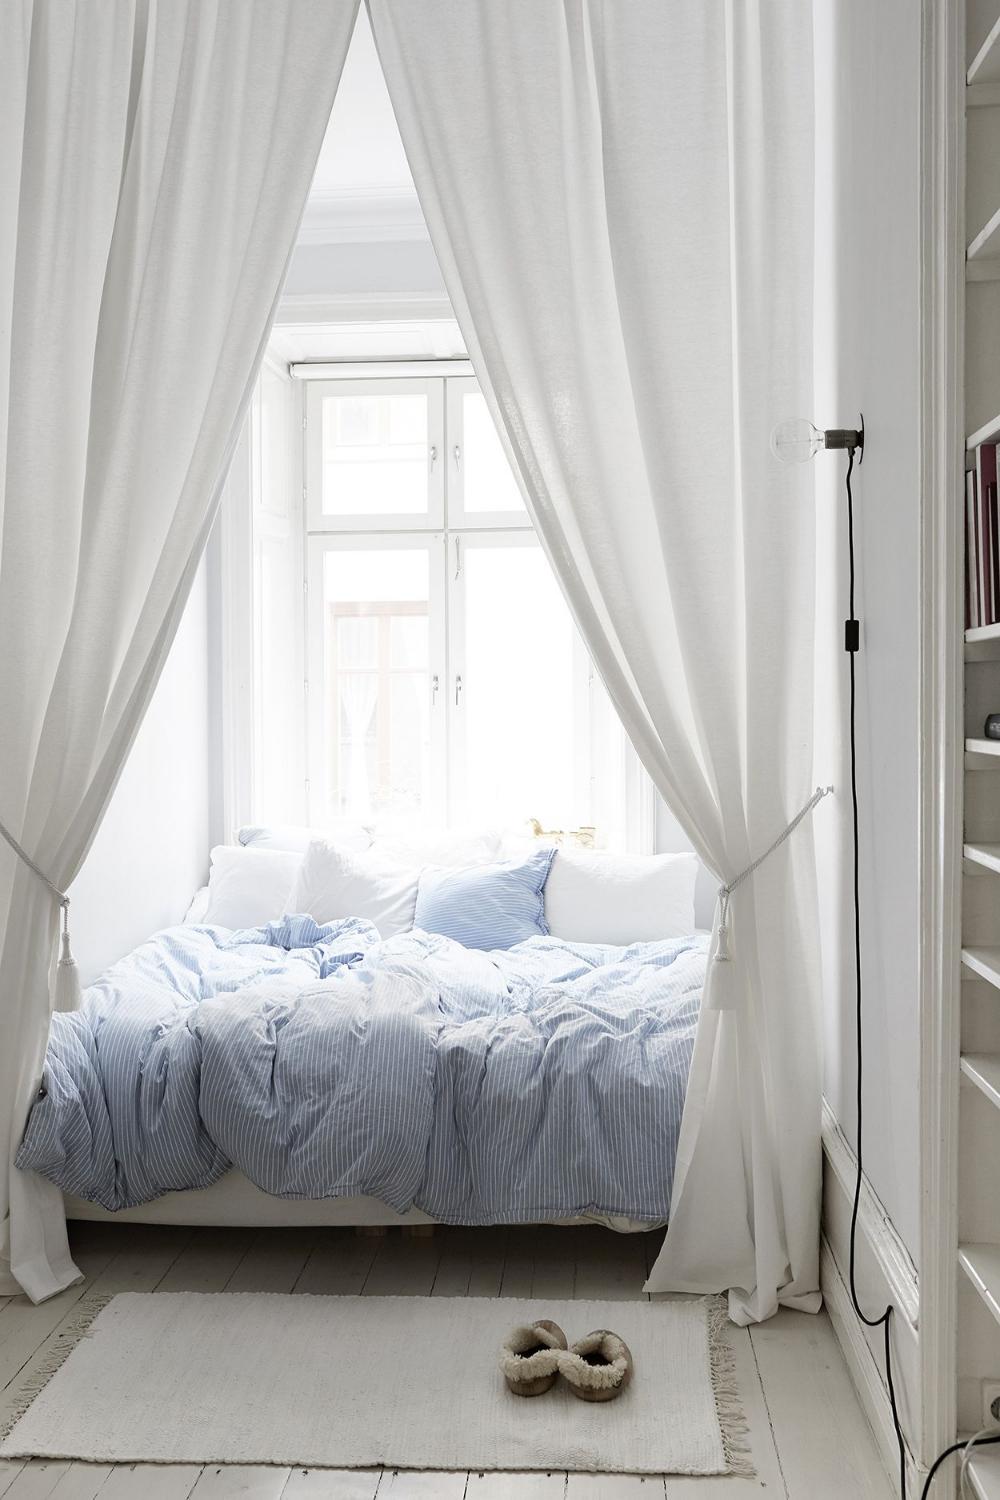 The Ingenious Trick That Makes Even The Tiniest Studio Apartment Feel Like A Palace